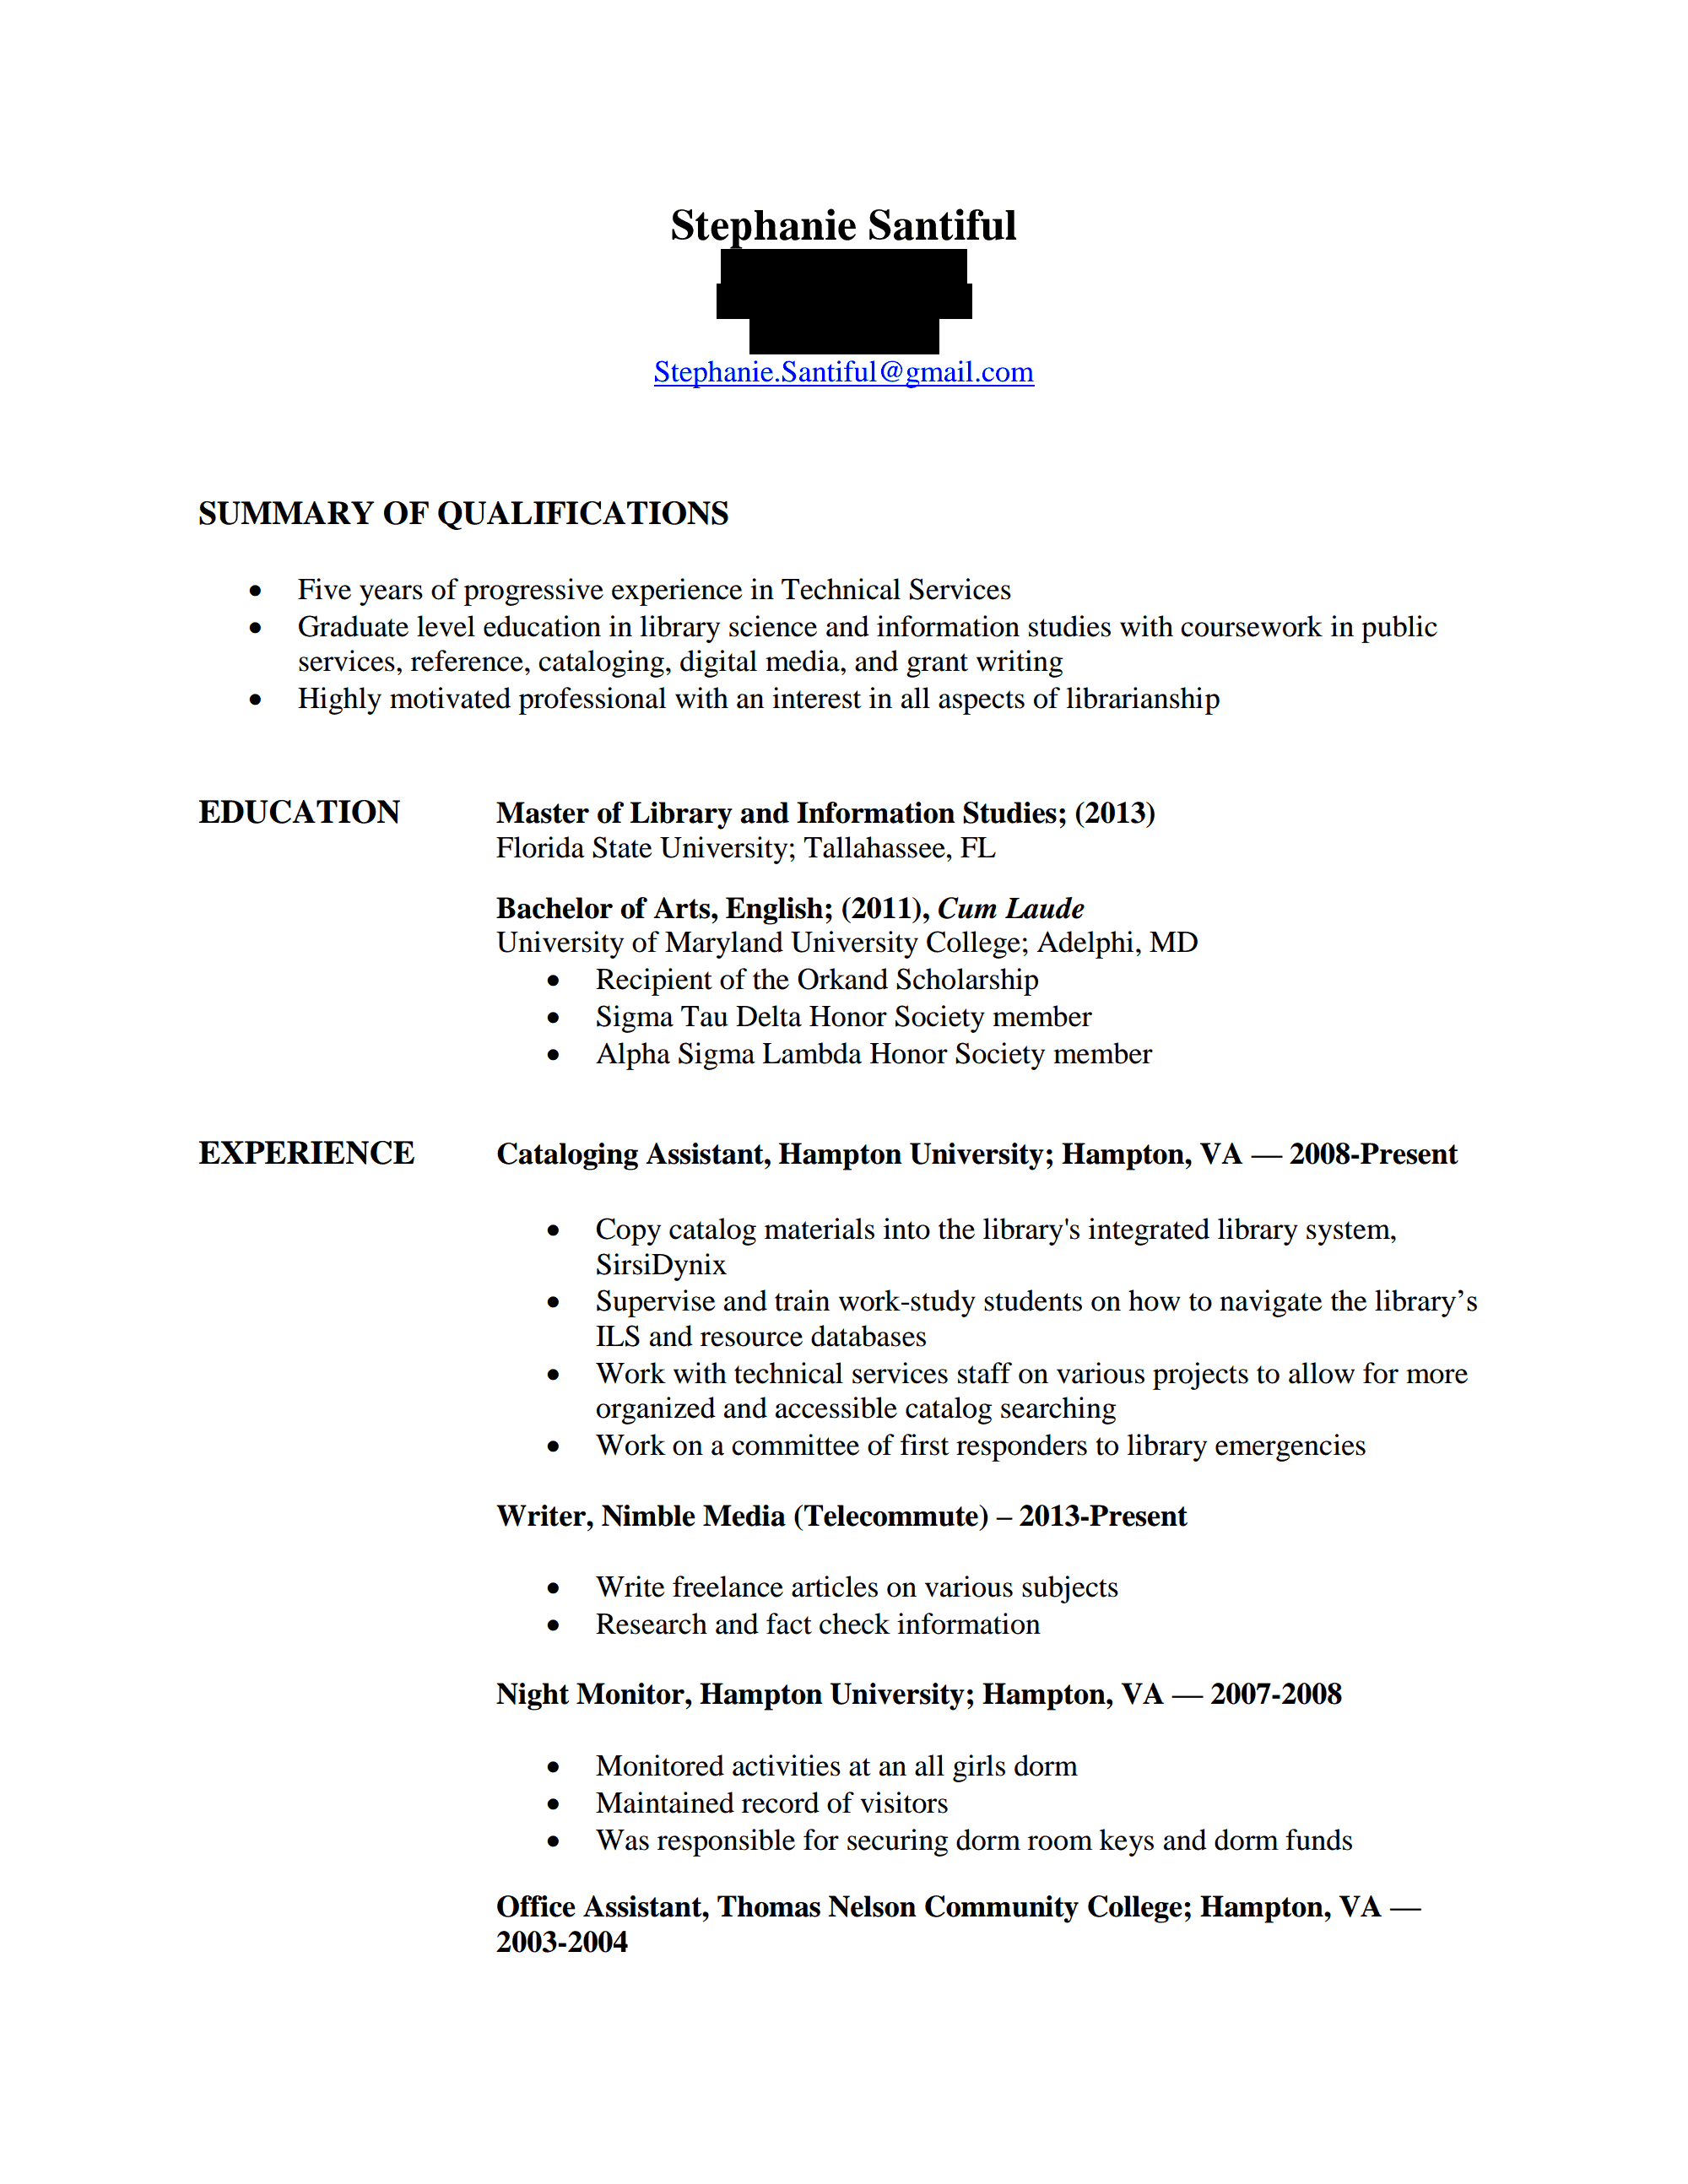 resume How A Resume Should Look resume looks empty how to design a creative blank should look like cv review hiring librarians page 3